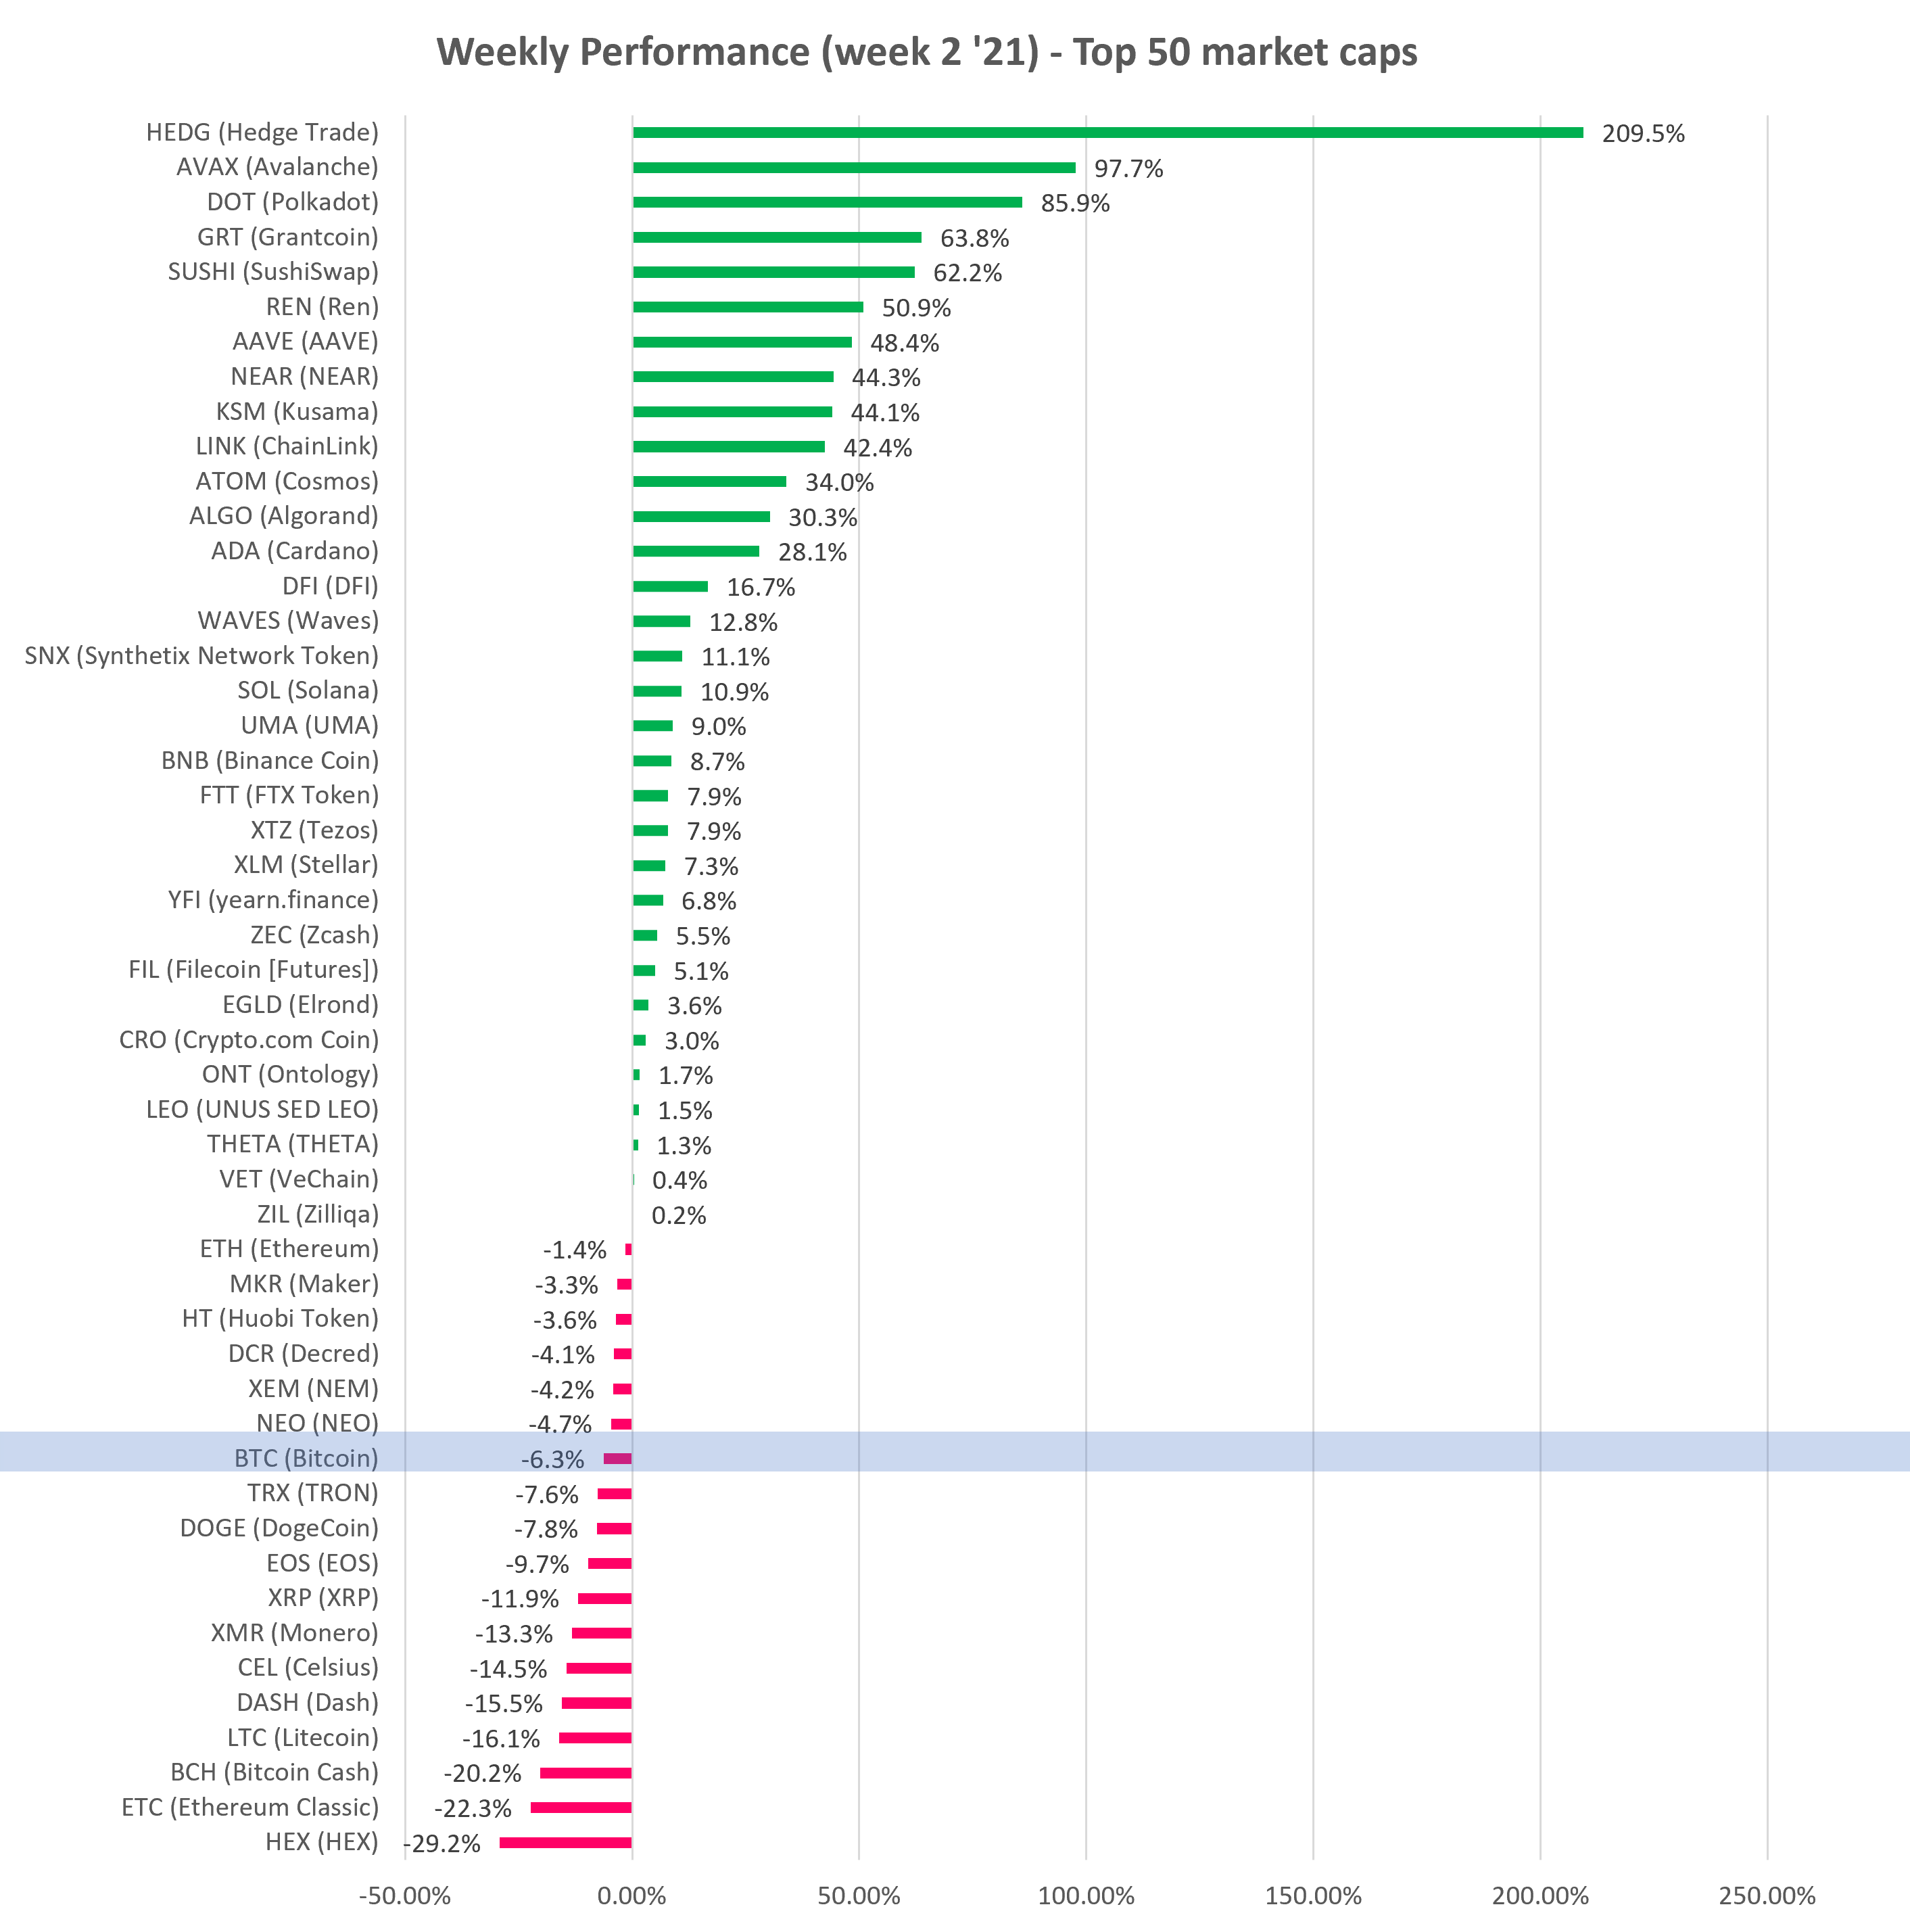 Top 50 Market Cap Cryptocurrency Gainers and Losers - week 2 year 2021